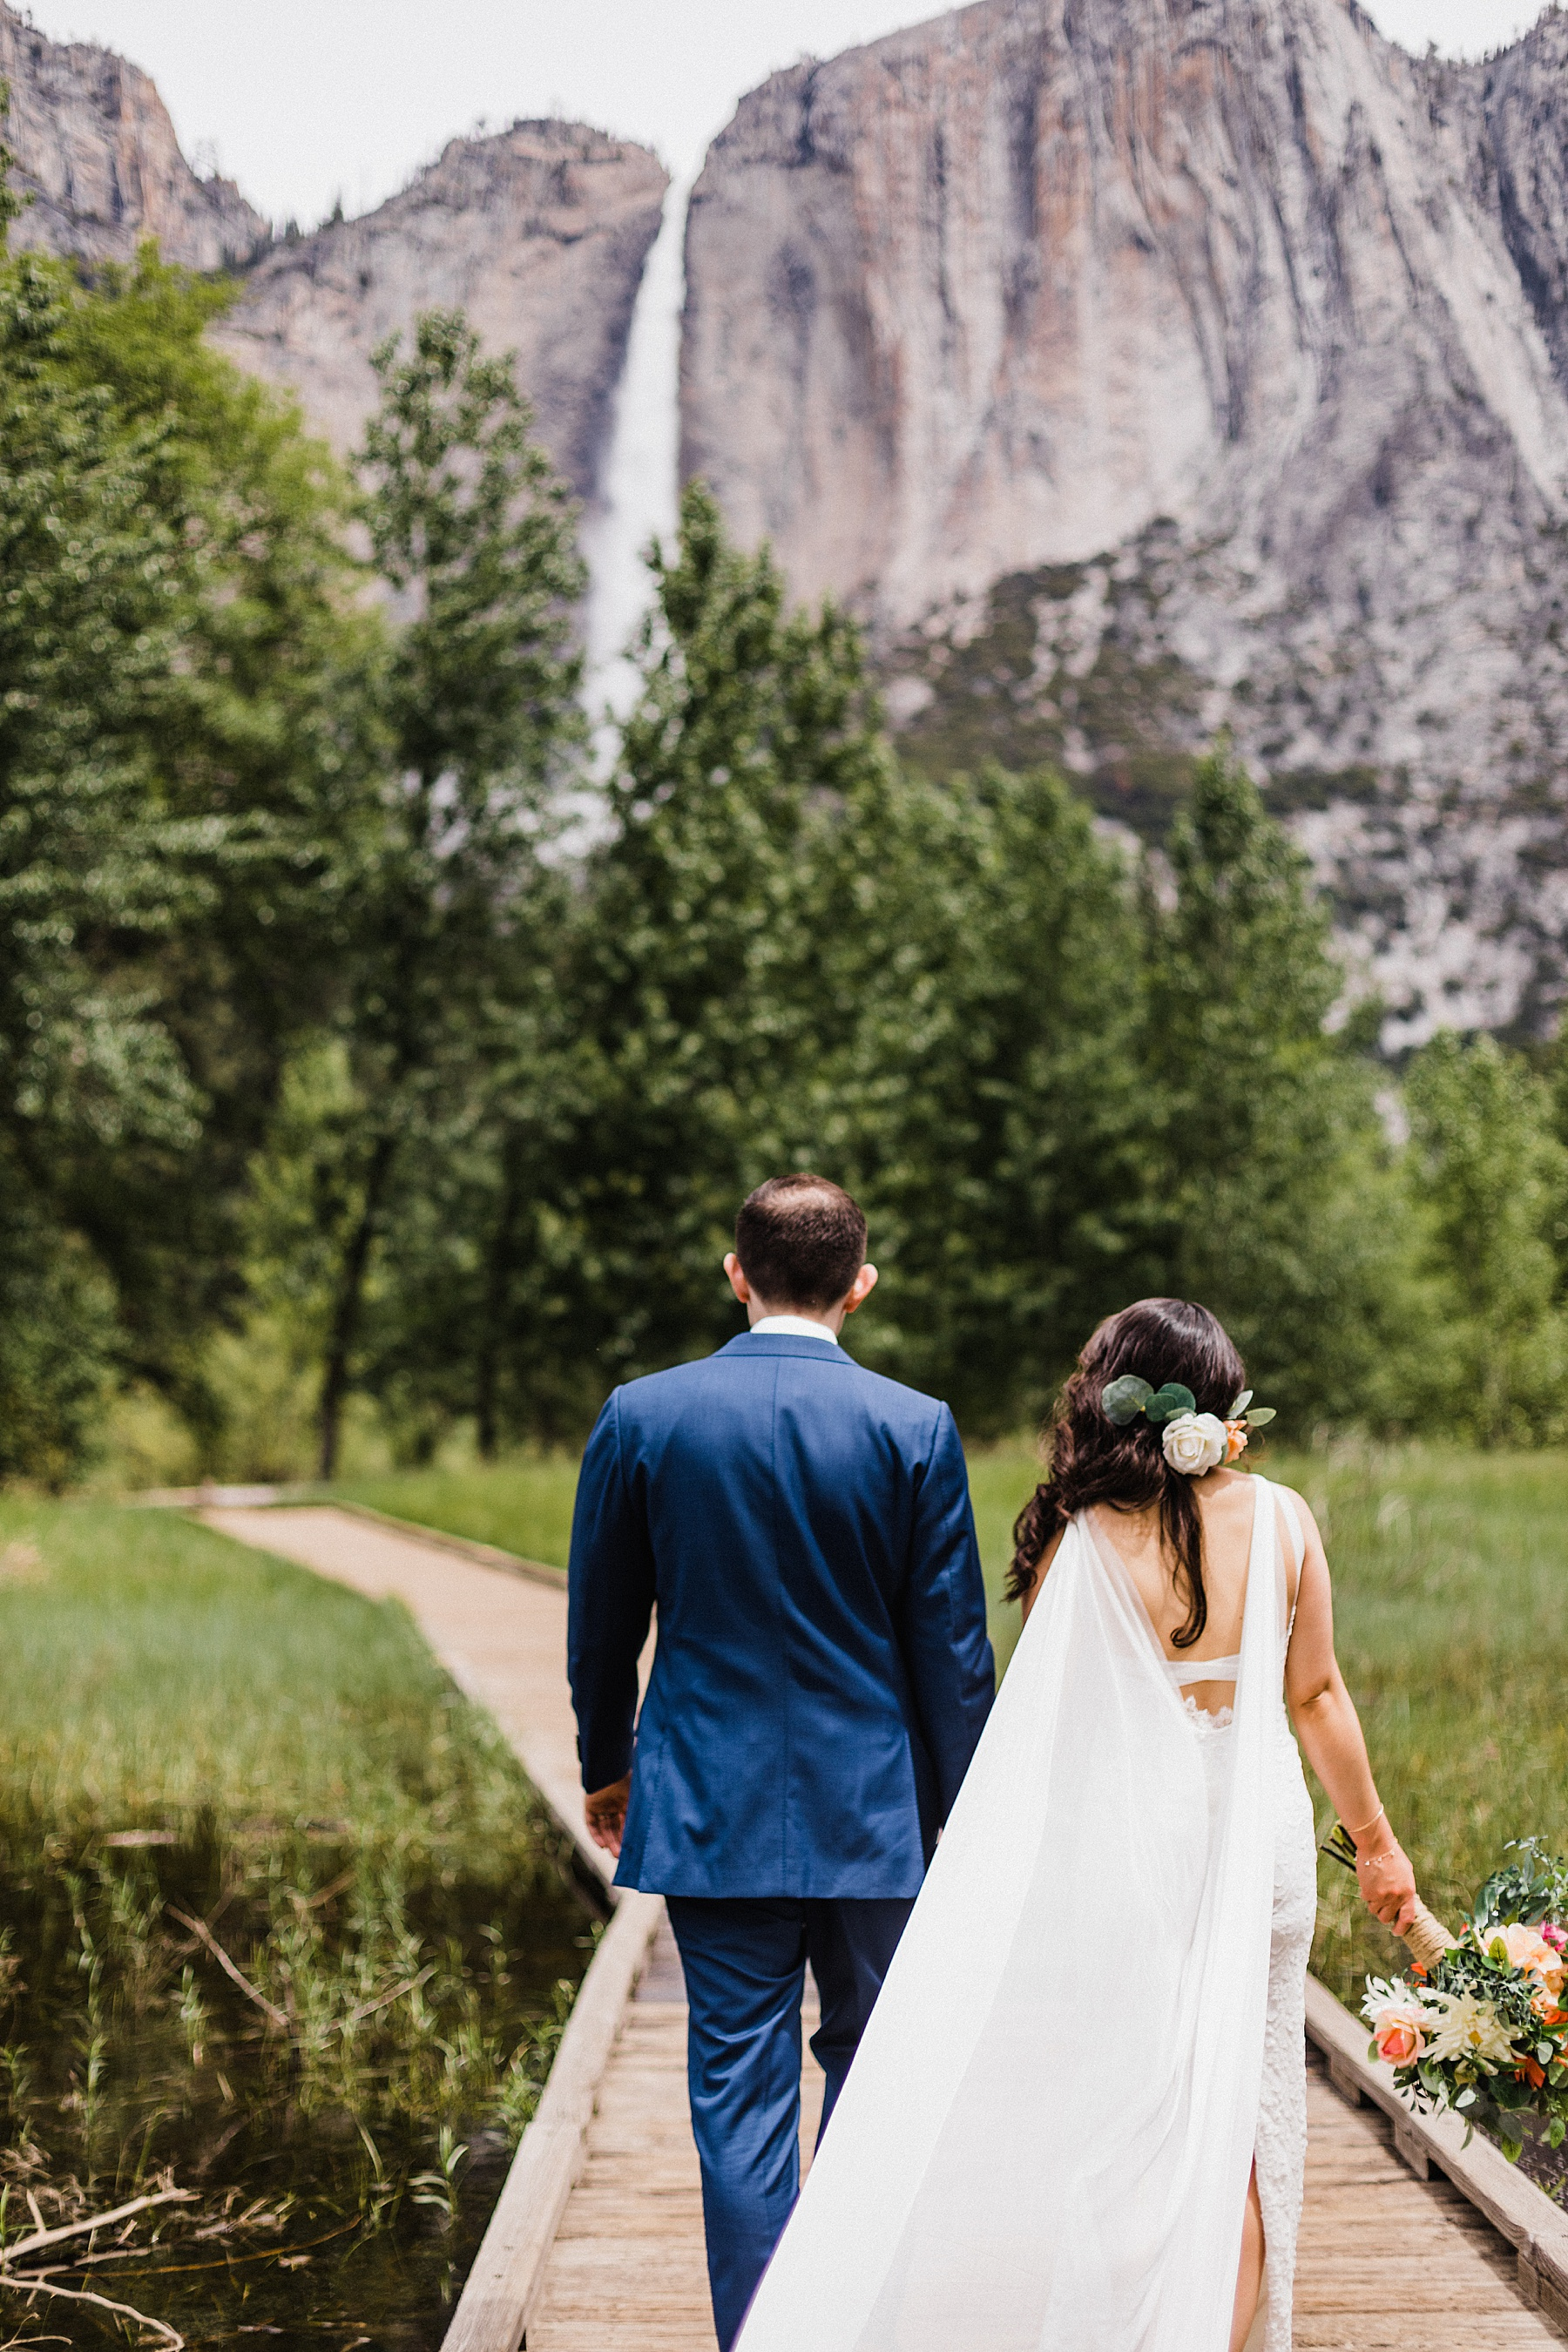 Cathedral Beach Ceremony | Yosemite Elopement | California Elopement Photographer | Vow of the Wild